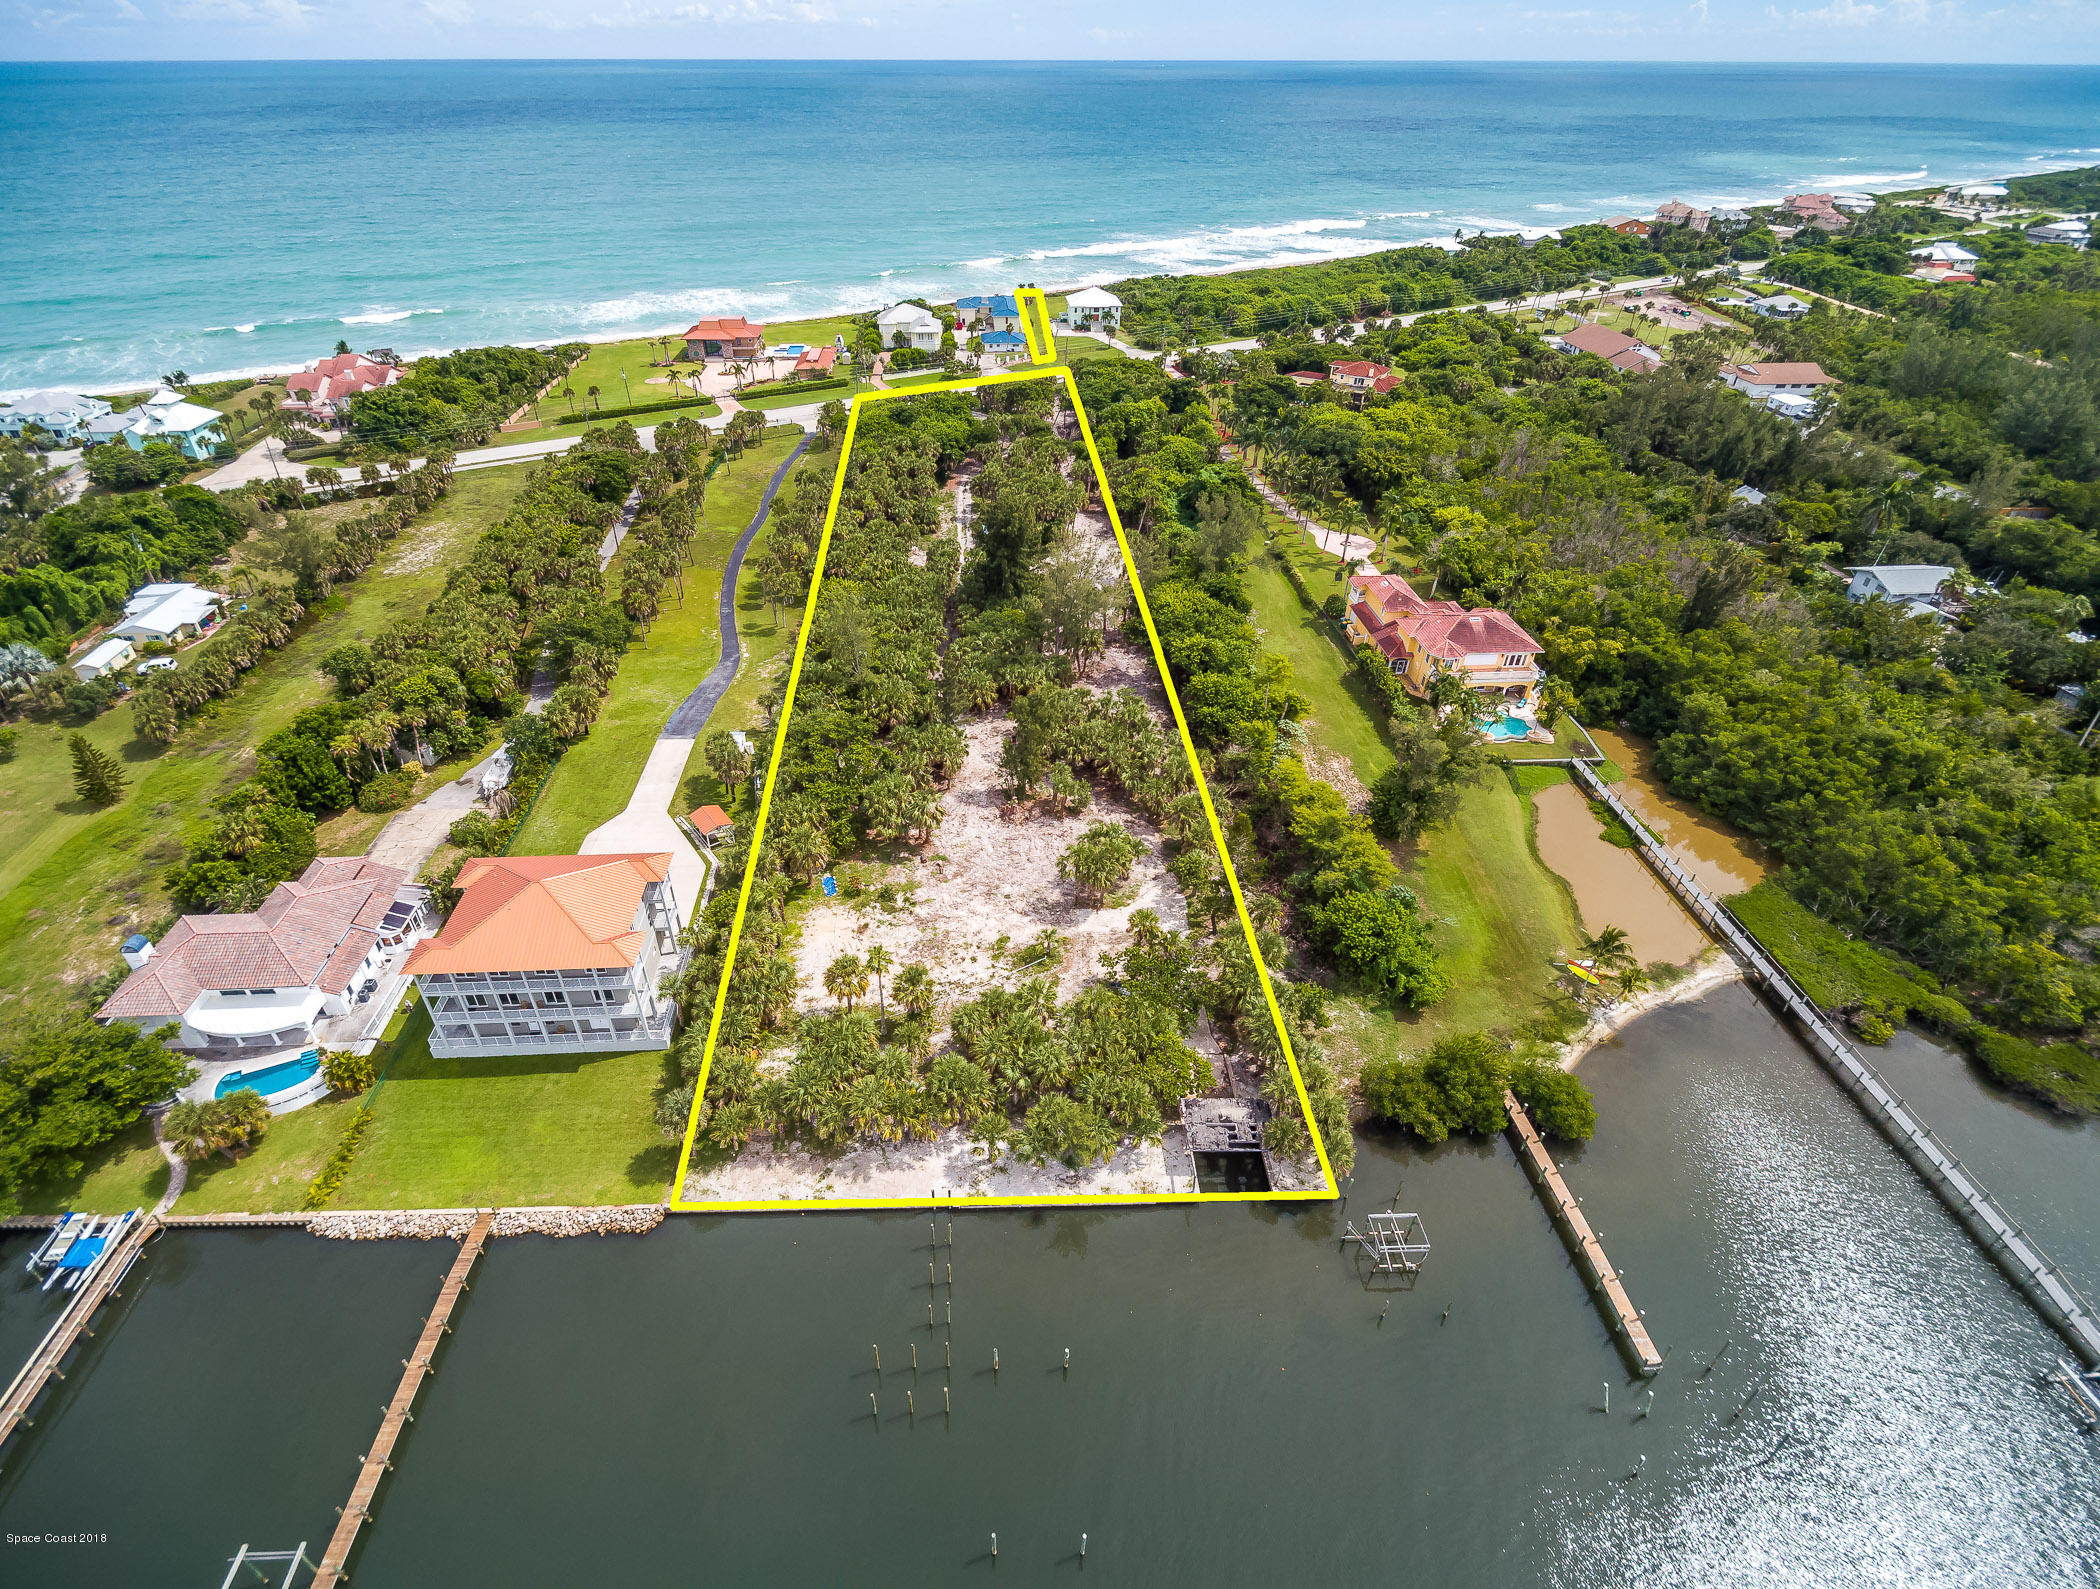 Land for Sale at 8170 S Highway A1a 8170 S Highway A1a Melbourne Beach, Florida 32951 United States